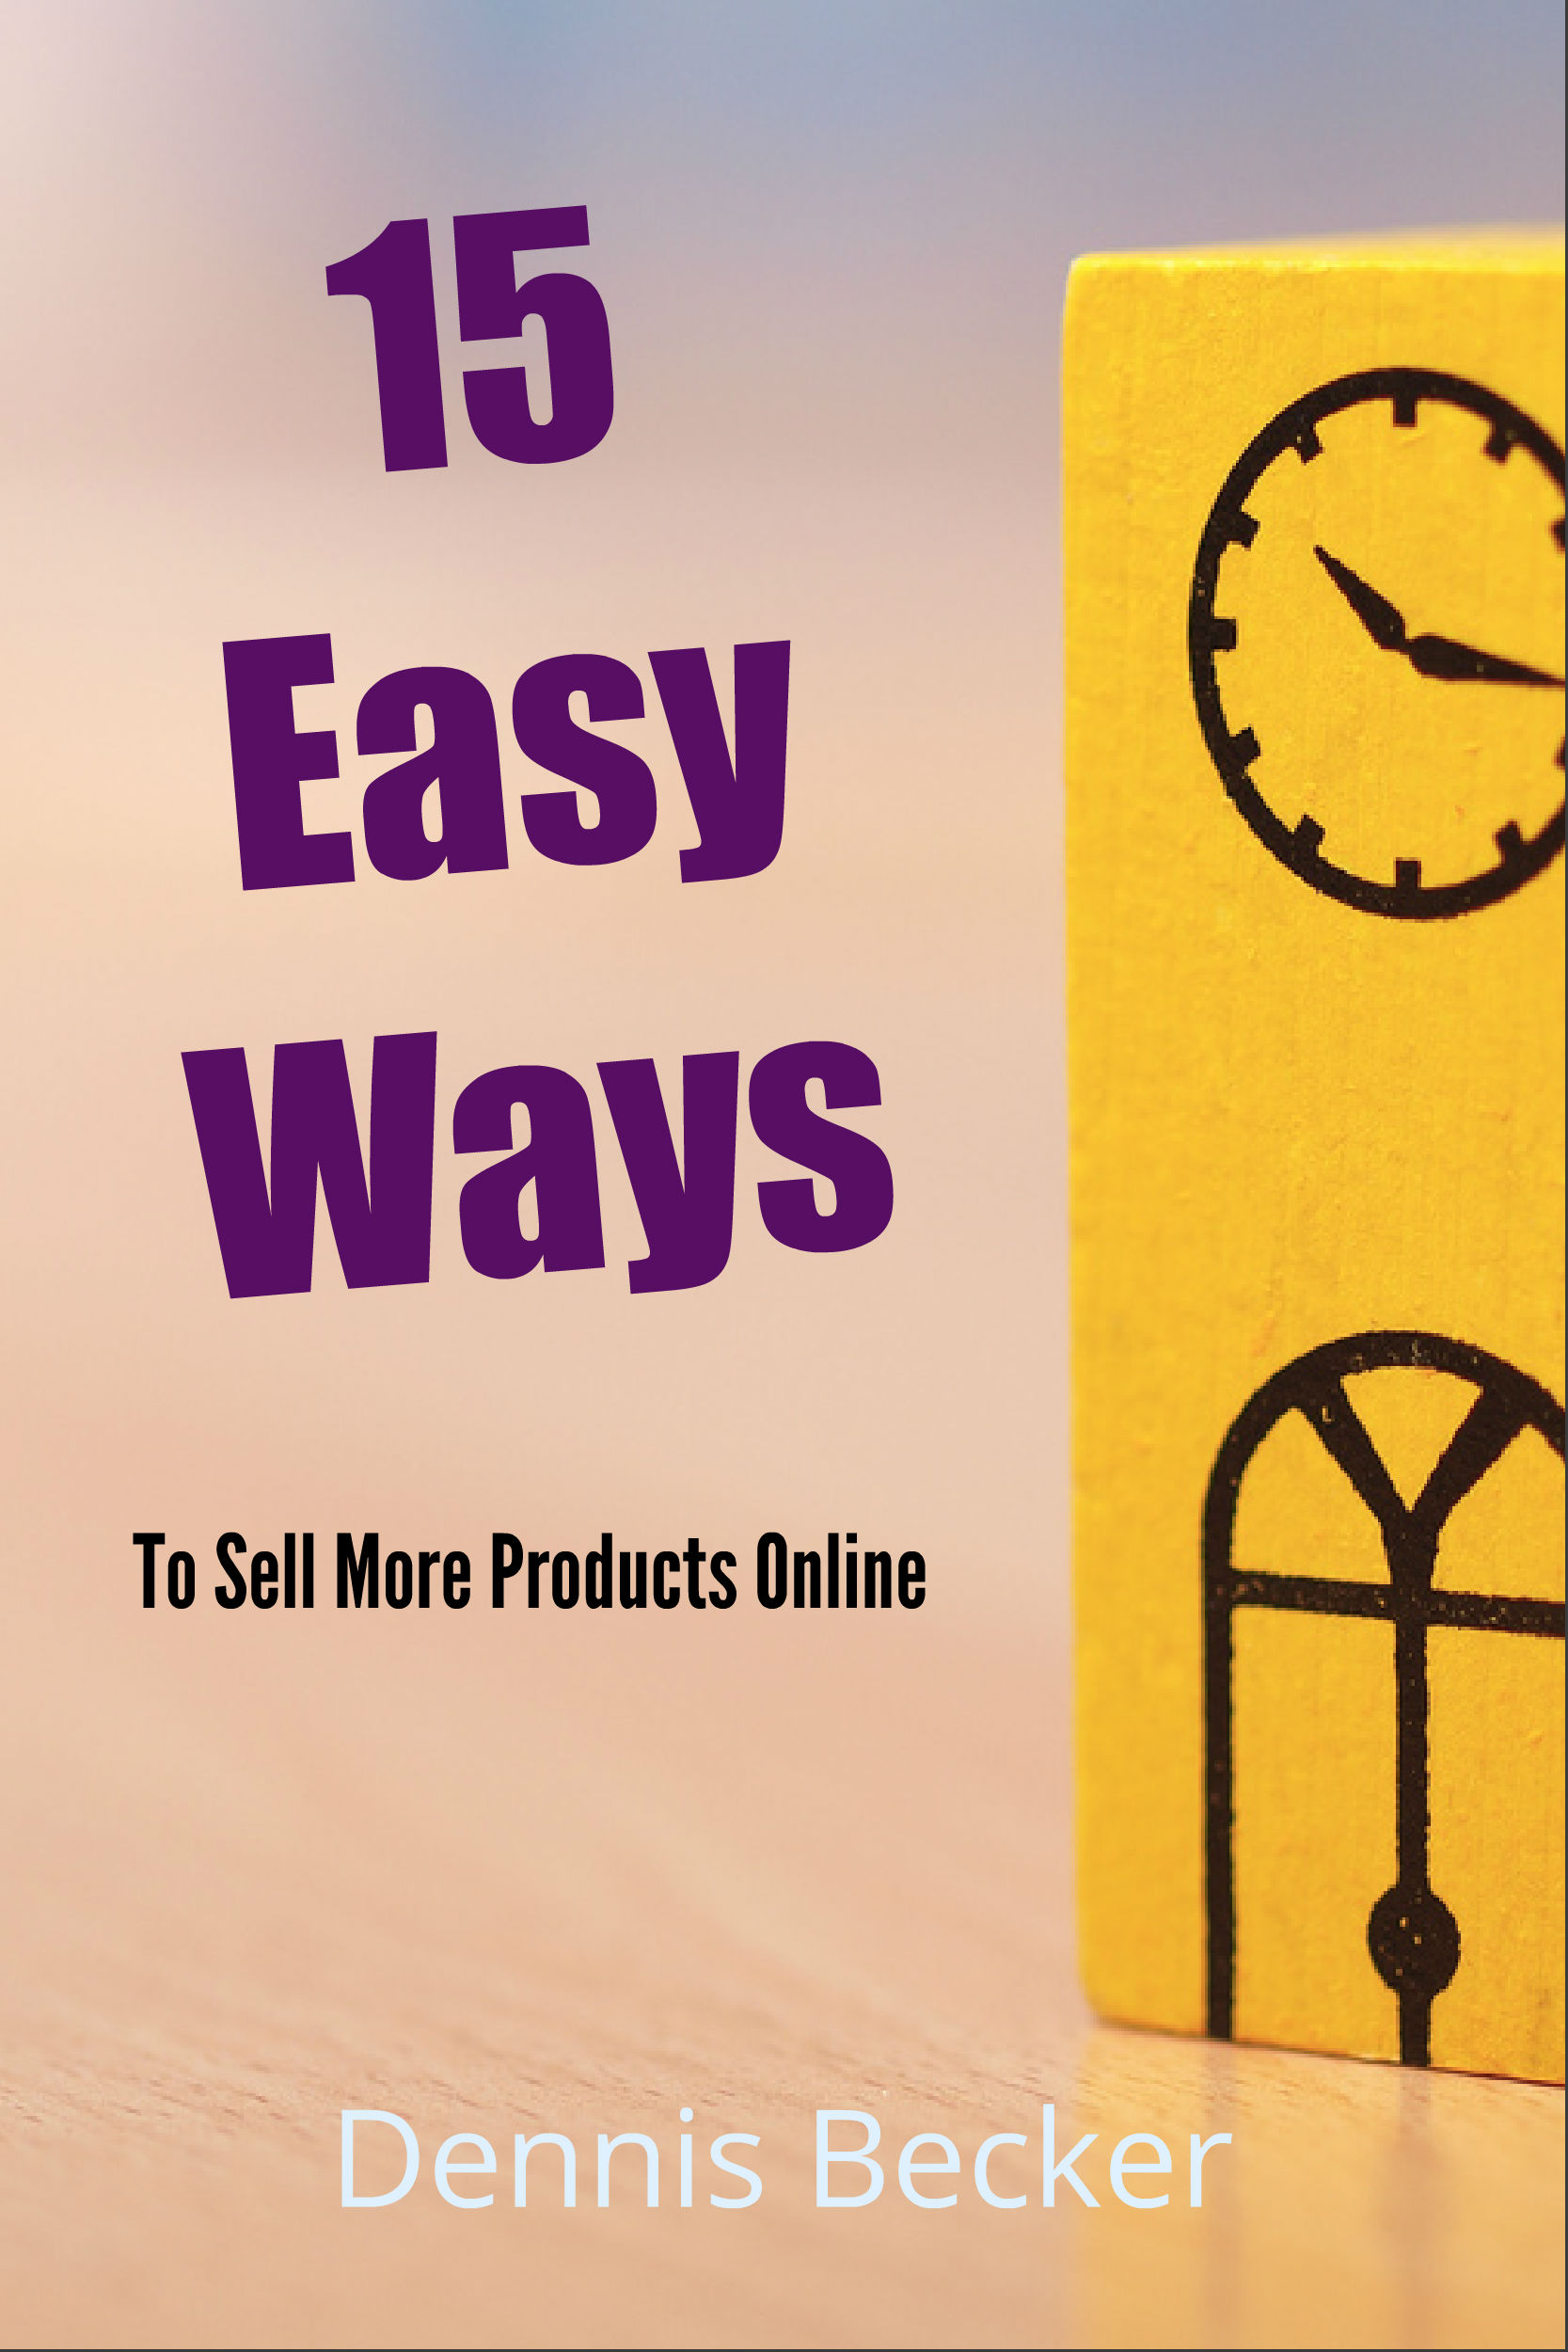 Easy way to sell clothes online